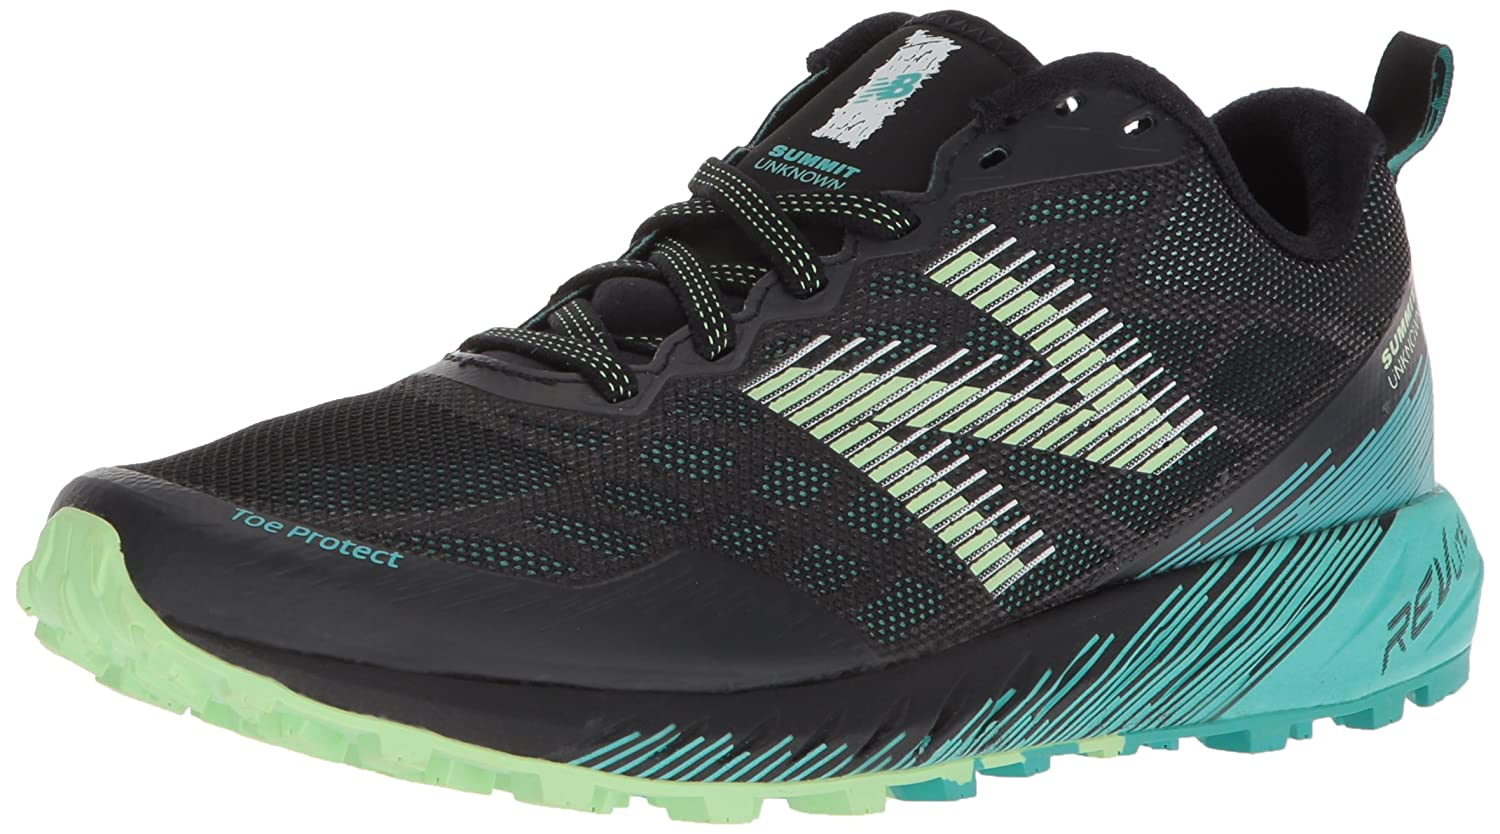 New Balance Summit Summit Unknown, Running 439 New Femme Green/Black 456502b - fast-weightloss-diet.space